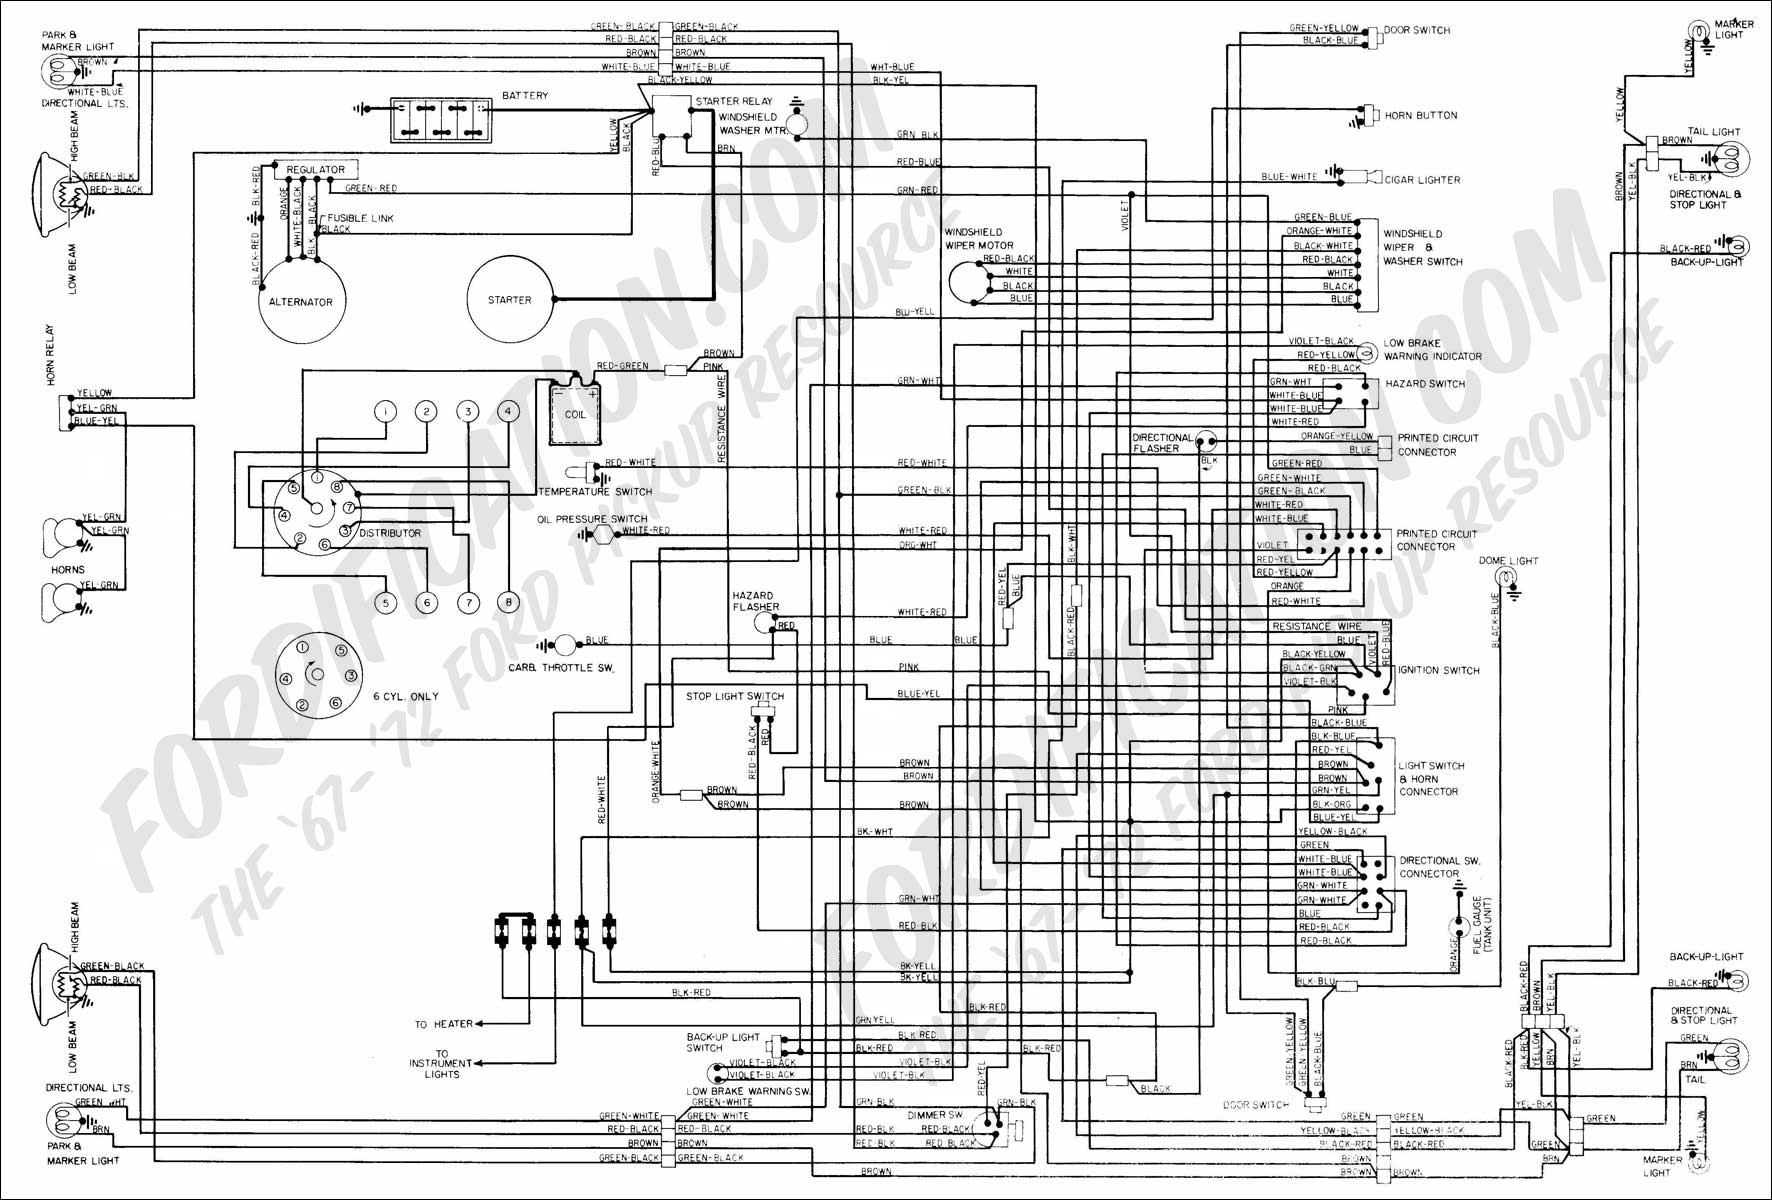 Dimmer Switch Wiring Diagram 2003 Ford Super Duty Worksheet And 06 Tundra 2000 F 250 Tail Light Schematics Diagrams U2022 Rh Parntesis Co Toyota From Pcm